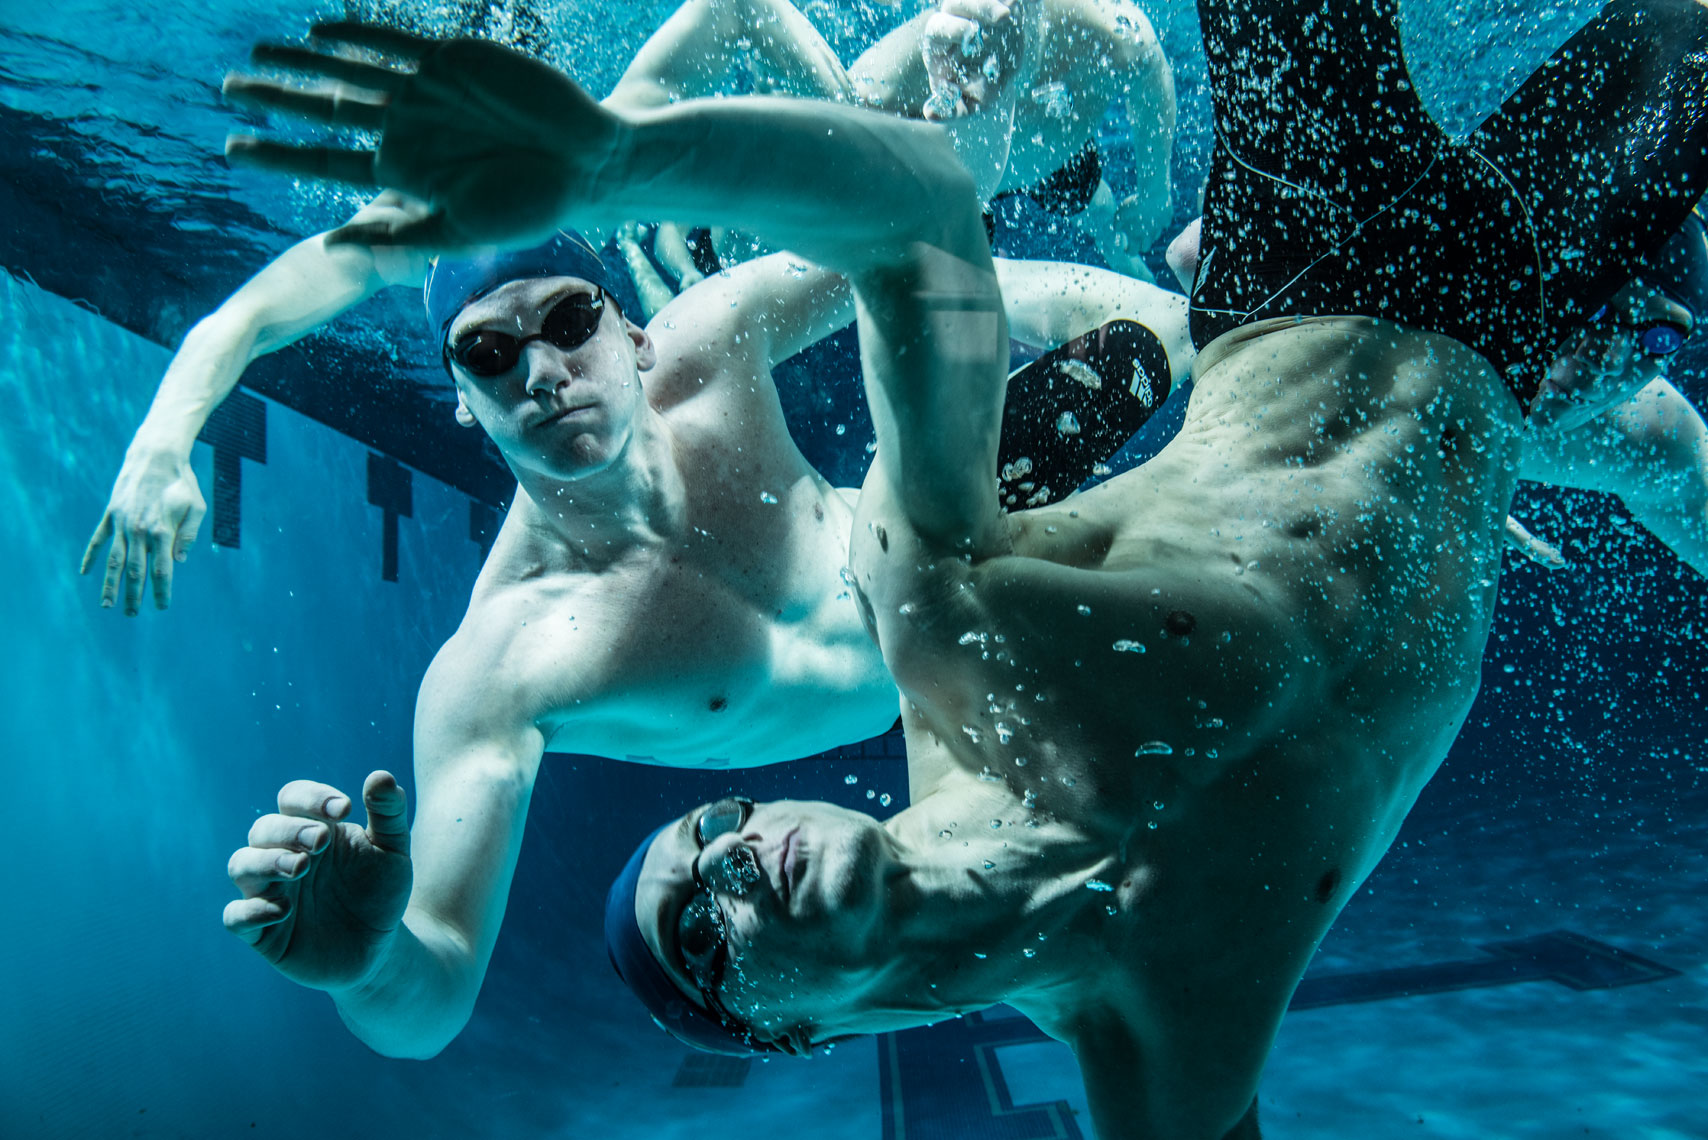 TCNJ swim team, by education photographer Mike Morgan.